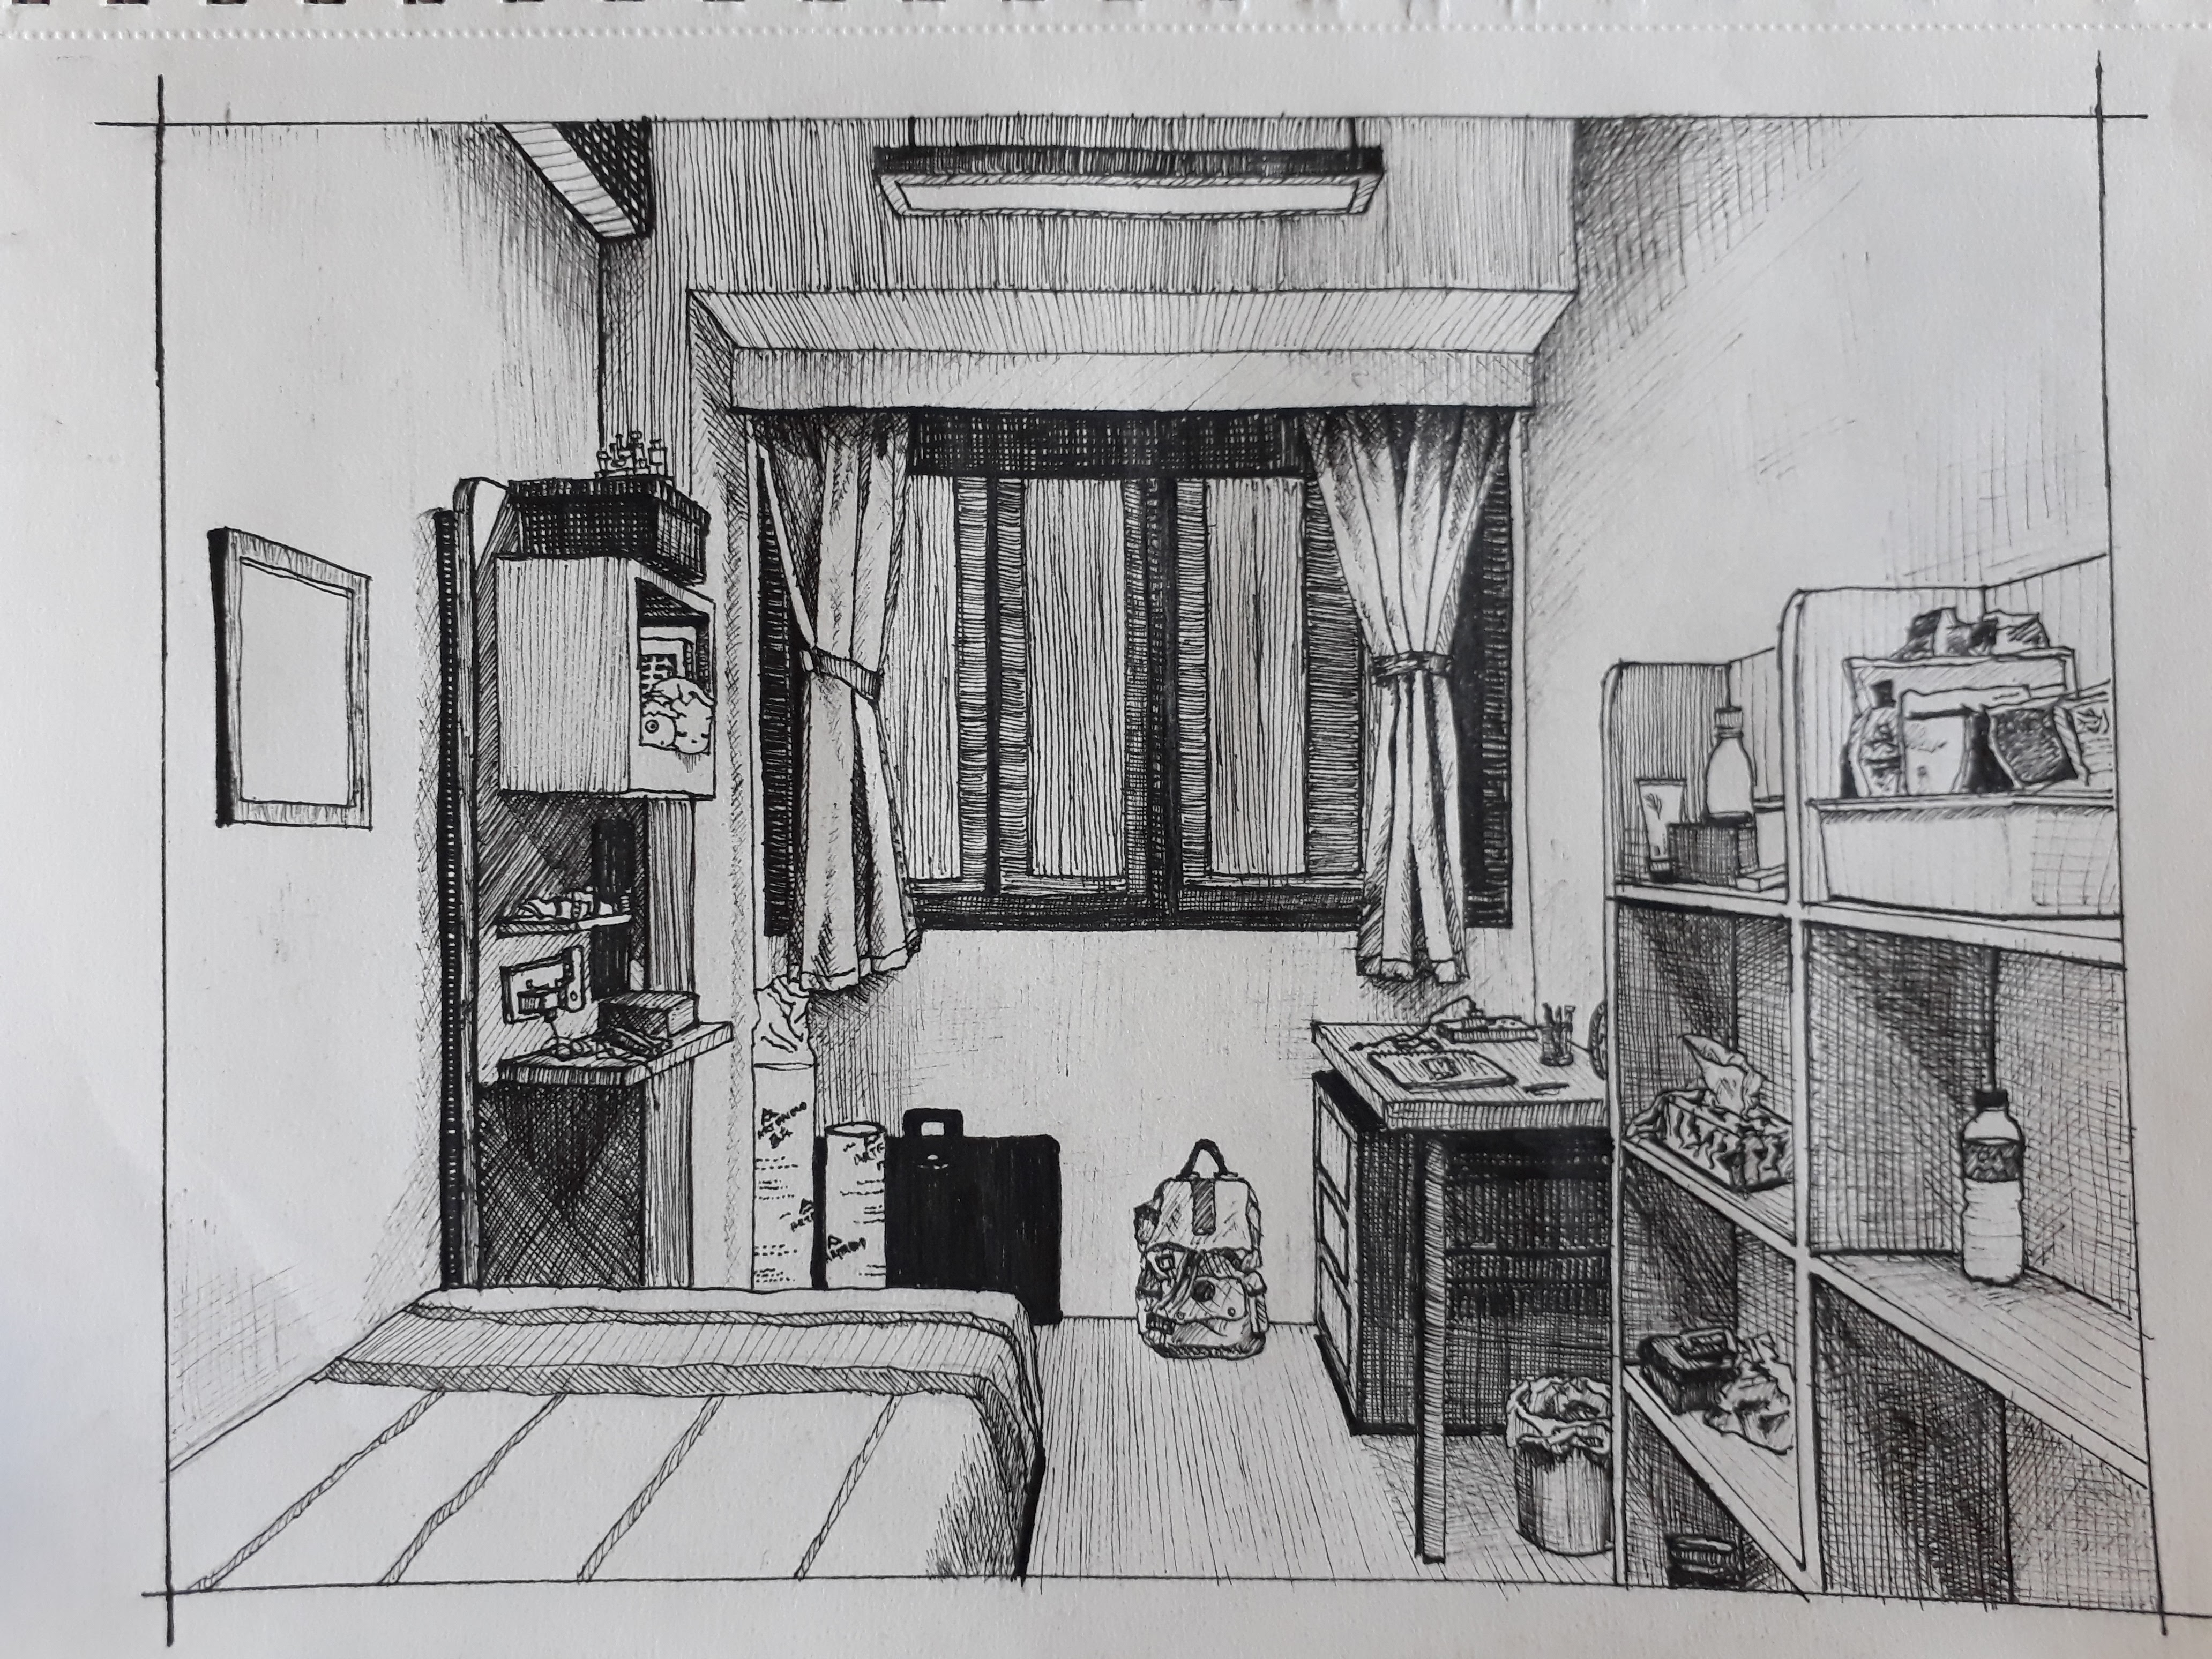 Groovy One Point Perspective Of My Room Yu Qing Download Free Architecture Designs Scobabritishbridgeorg